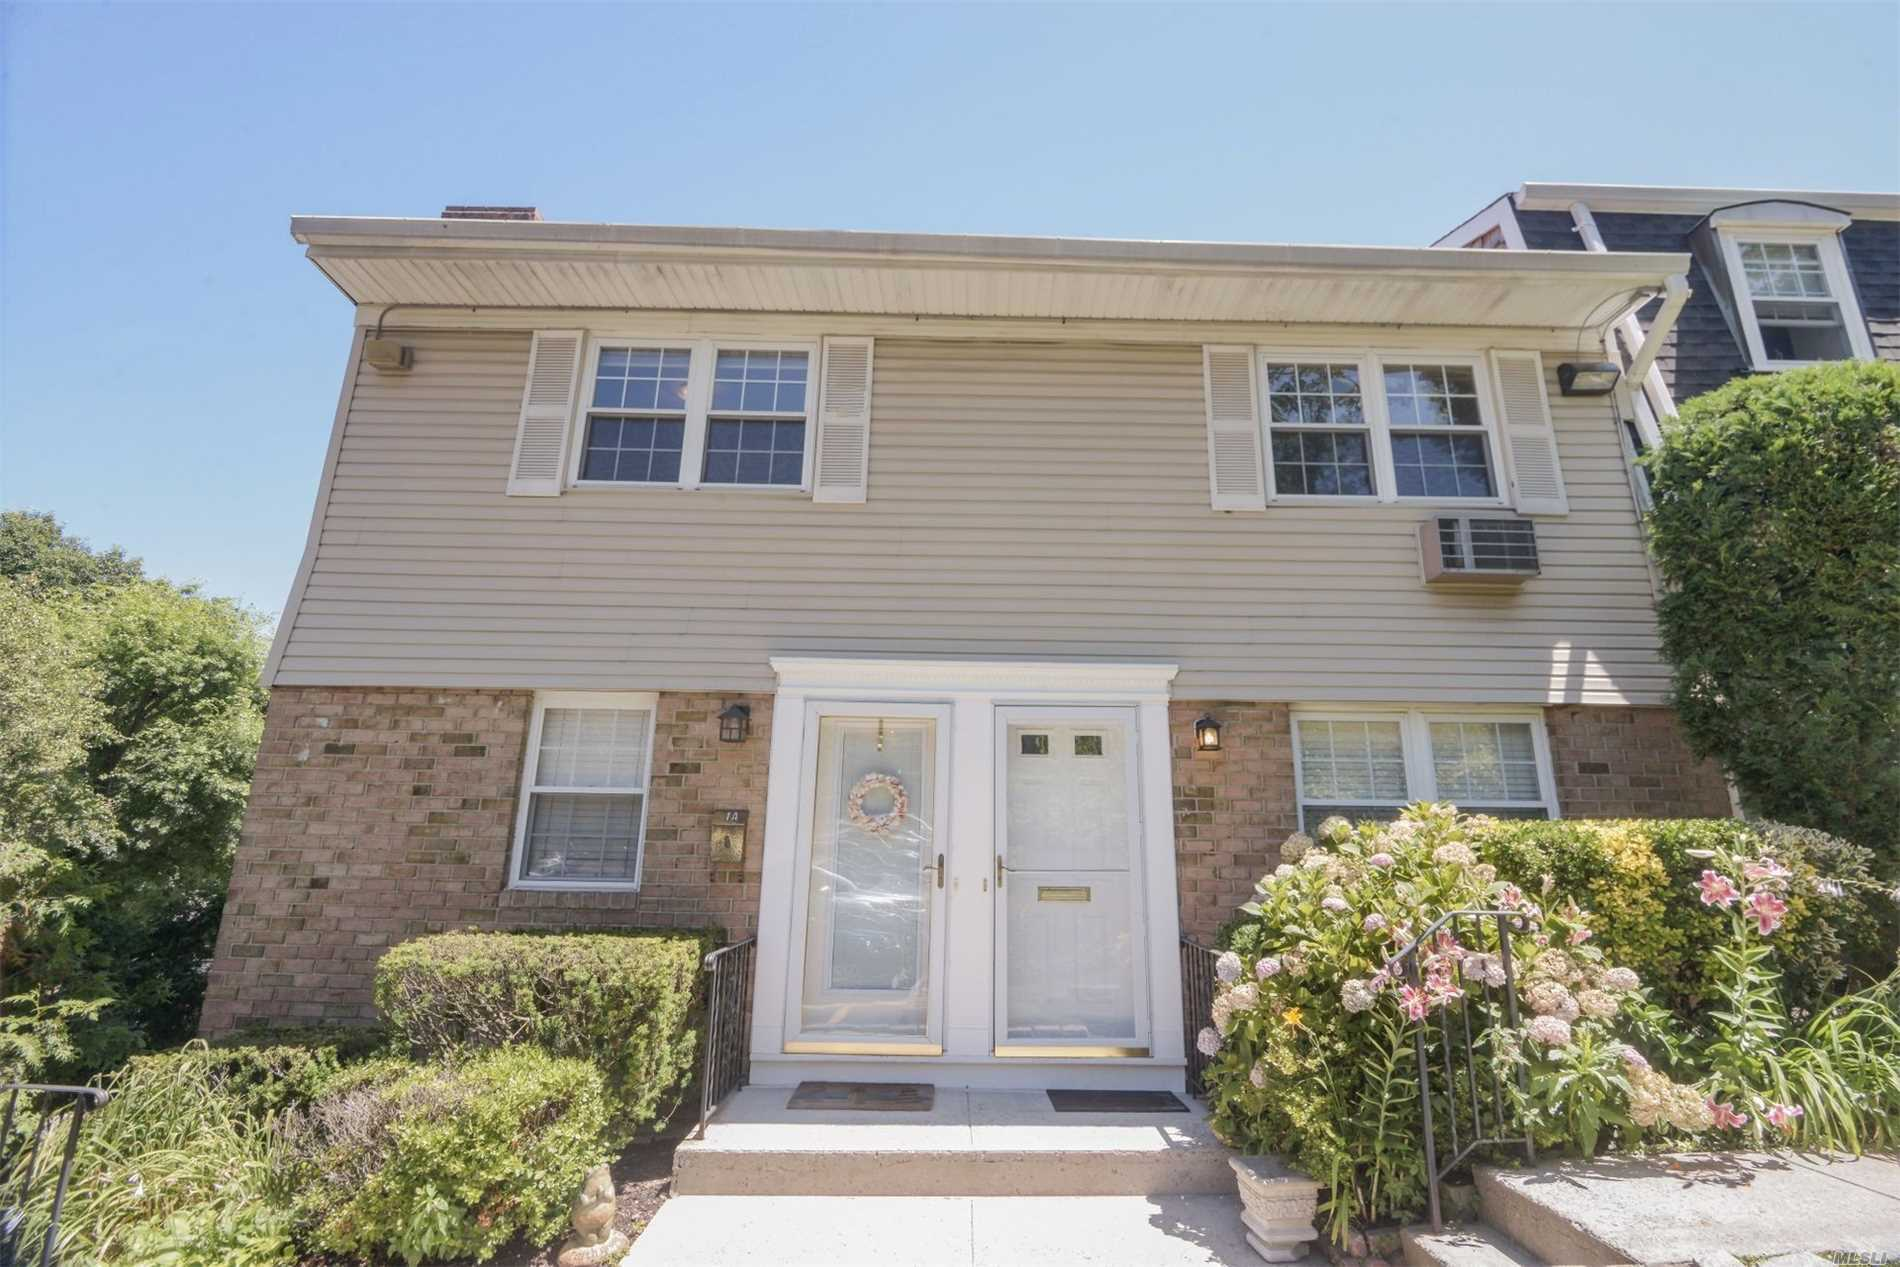 Enjoy Waterviews Inside Or Out On The Back Deck Of This Private Corner Unit In Oyster Bay's Desirable Top Of The Harbour Community! It Is The Only Two-Bedroom Model Available! Clean, Bright & Airy! Plenty Of Closets & Storage Throughout. Great Location! Close To Town, Lirr, Beaches, Parks, Shopping, Restaurants & Entertainment. Maintenance Includes Heat, Water, Taxes, Snow Removal & Landscaping.